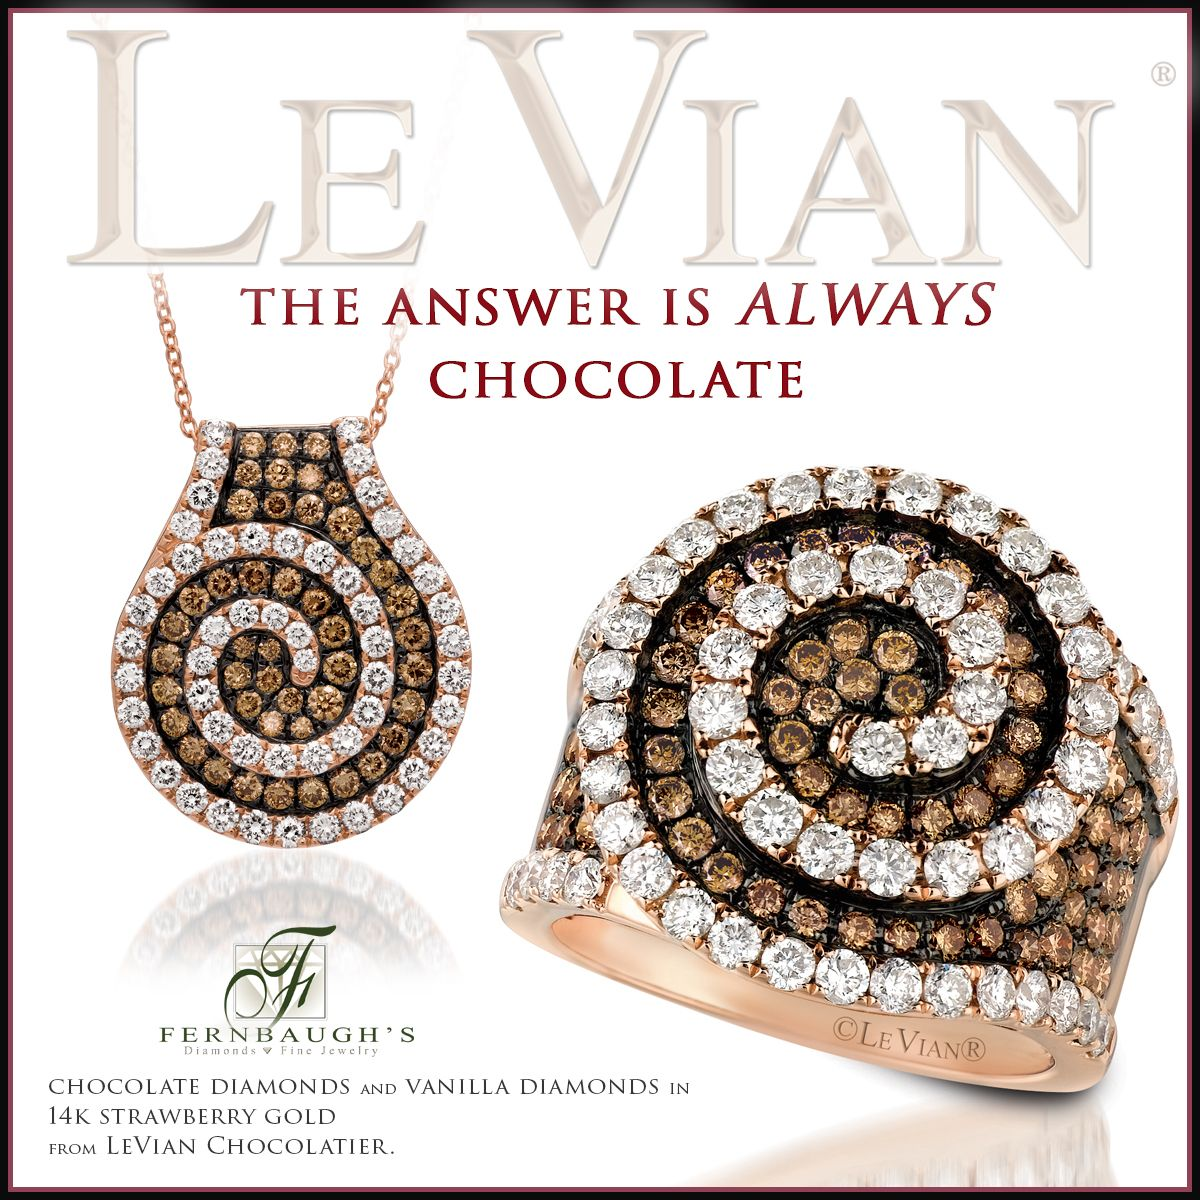 Chocolate is the anwer, who cares what the question is? #ChocolateDiamonds #LeVian""